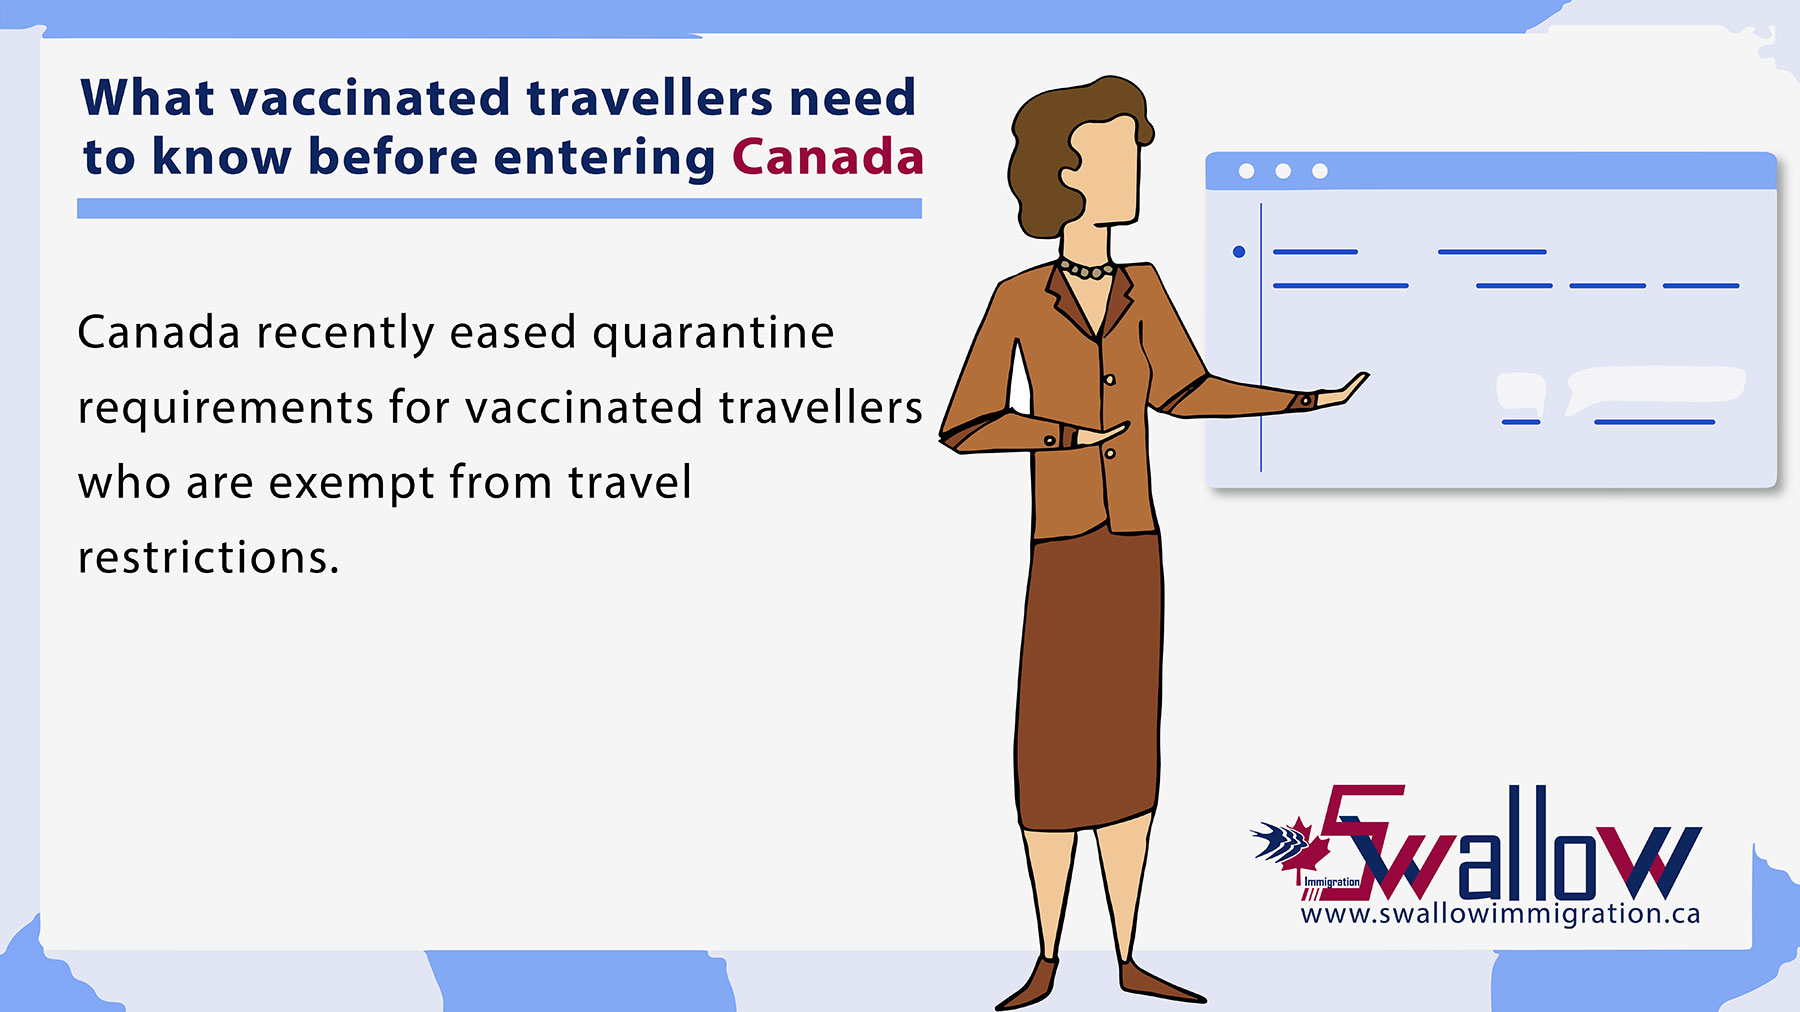 What vaccinated travellers need to know before entering Canada